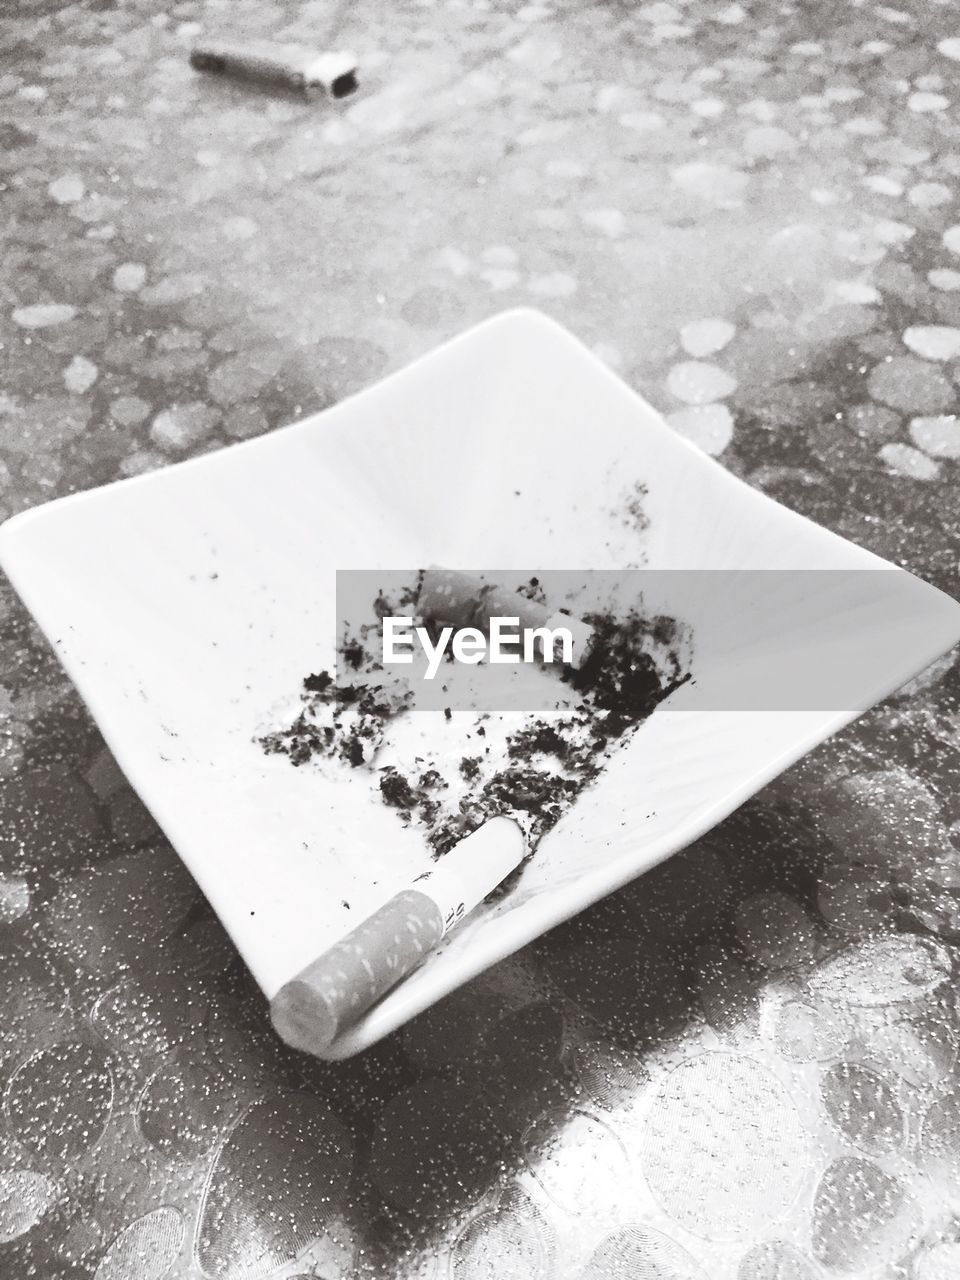 addiction, still life, high angle view, table, bad habit, ashtray, close-up, social issues, cigarette butt, no people, outdoors, day